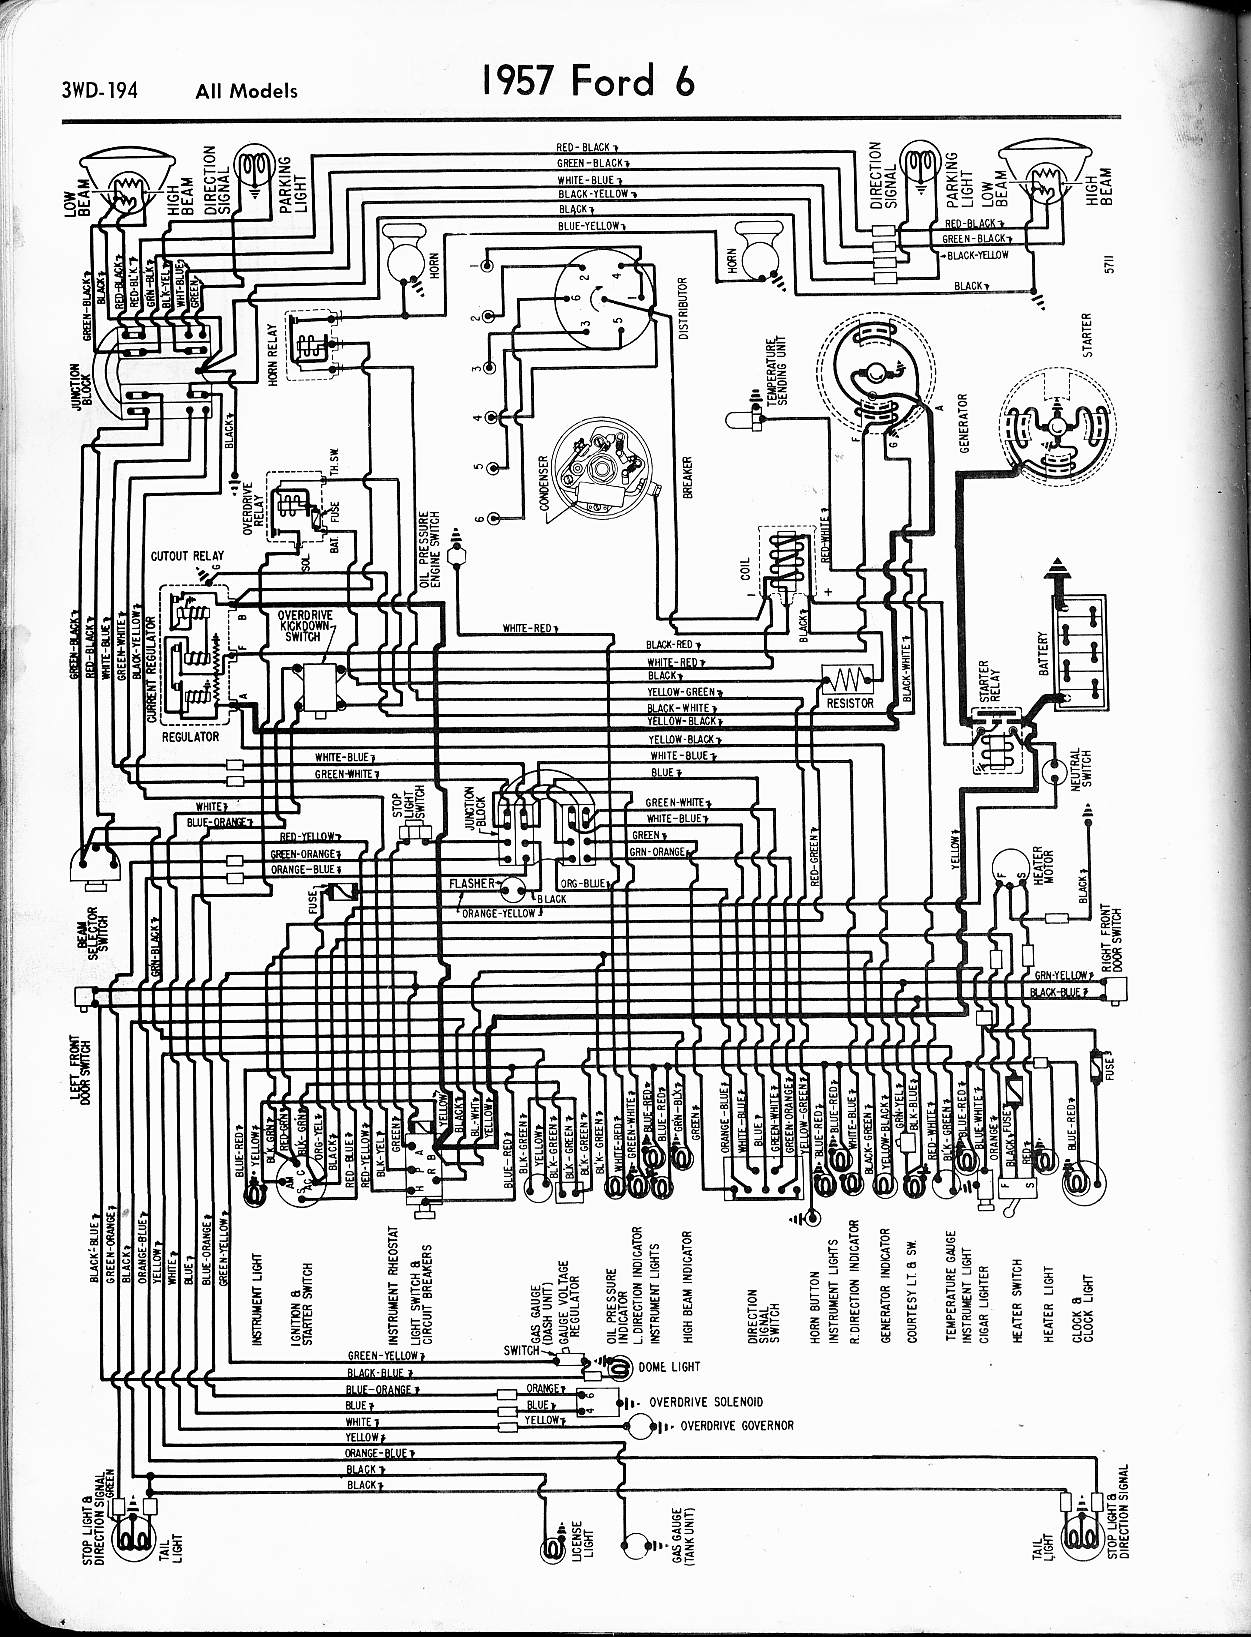 ford wire diagrams ford wiring diagrams ford wiring diagrams rh vionv tripa co 1982 Ford L8000 Wiring-Diagram Ford Pickup Wiring Diagrams